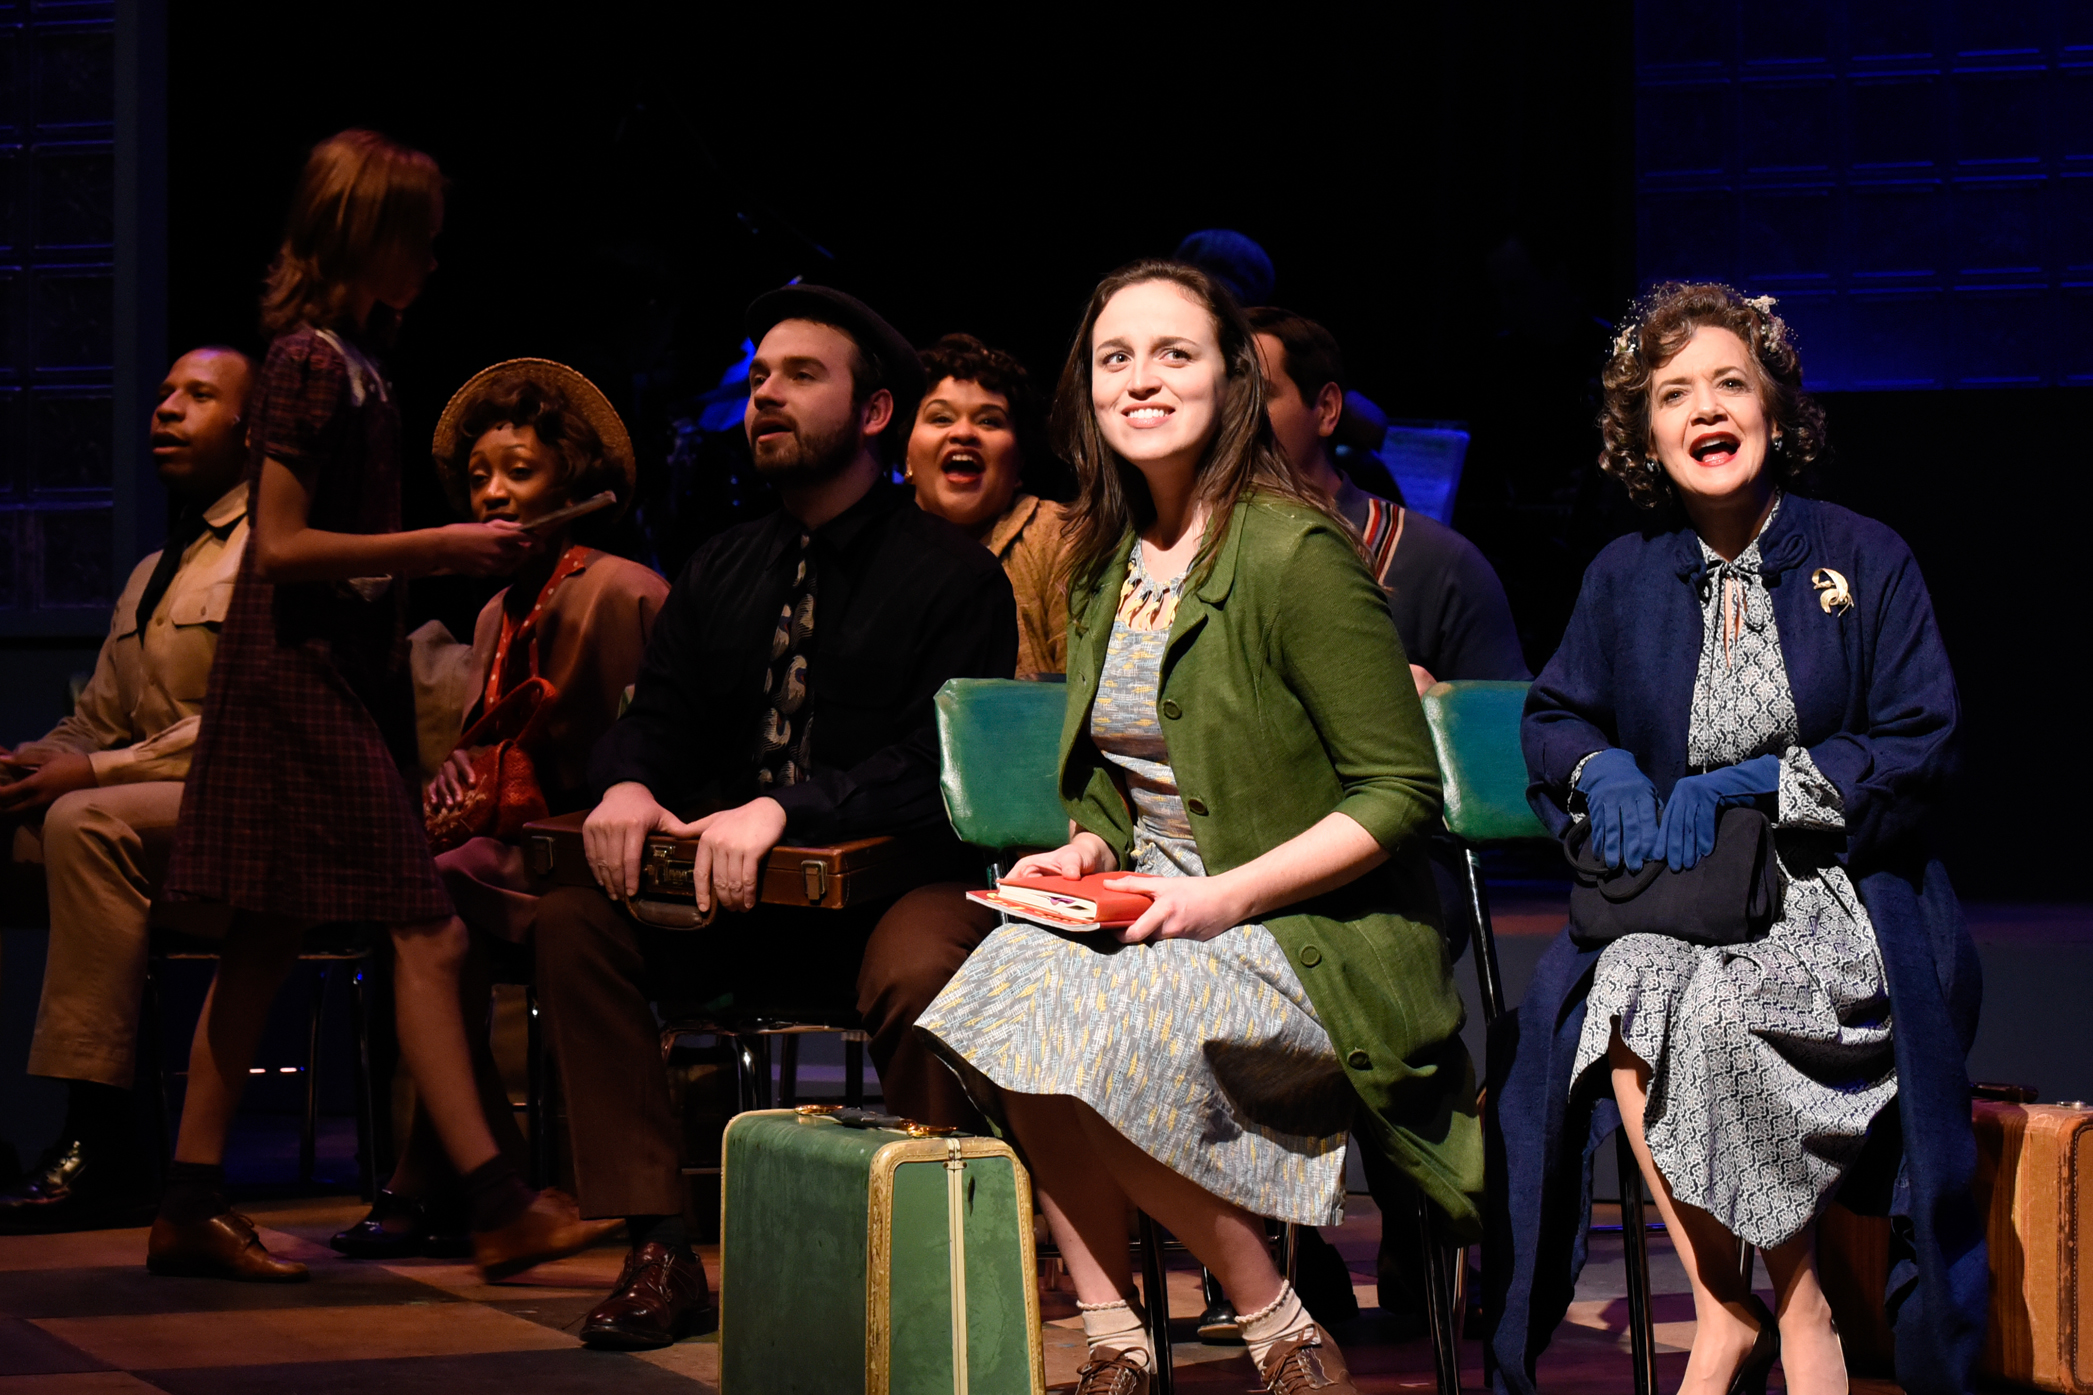 speakeasy stage company production - HD2093×1395